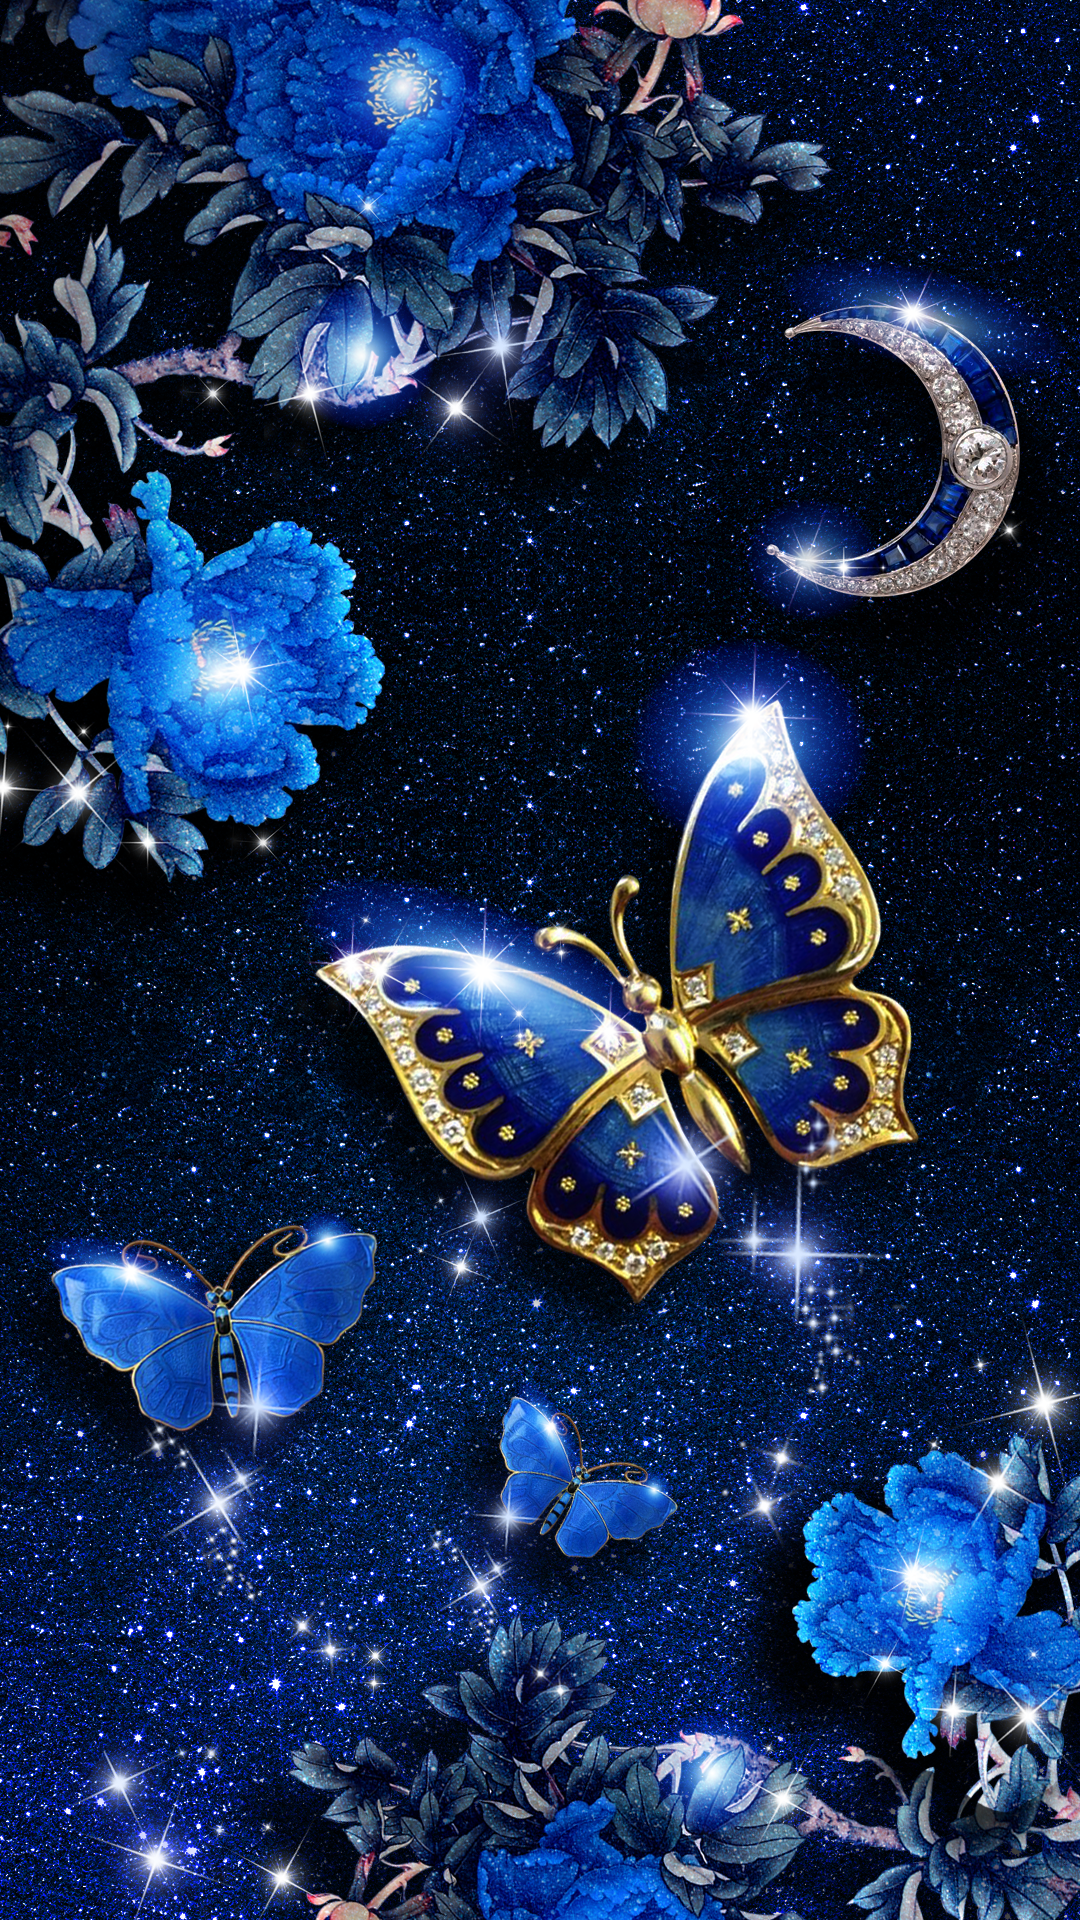 Elegant Blue Butterfly Live Wallpaper Android Live Wallpaper Background It I Blue Butterfly Wallpaper Butterfly Wallpaper Backgrounds Android Wallpaper Blue